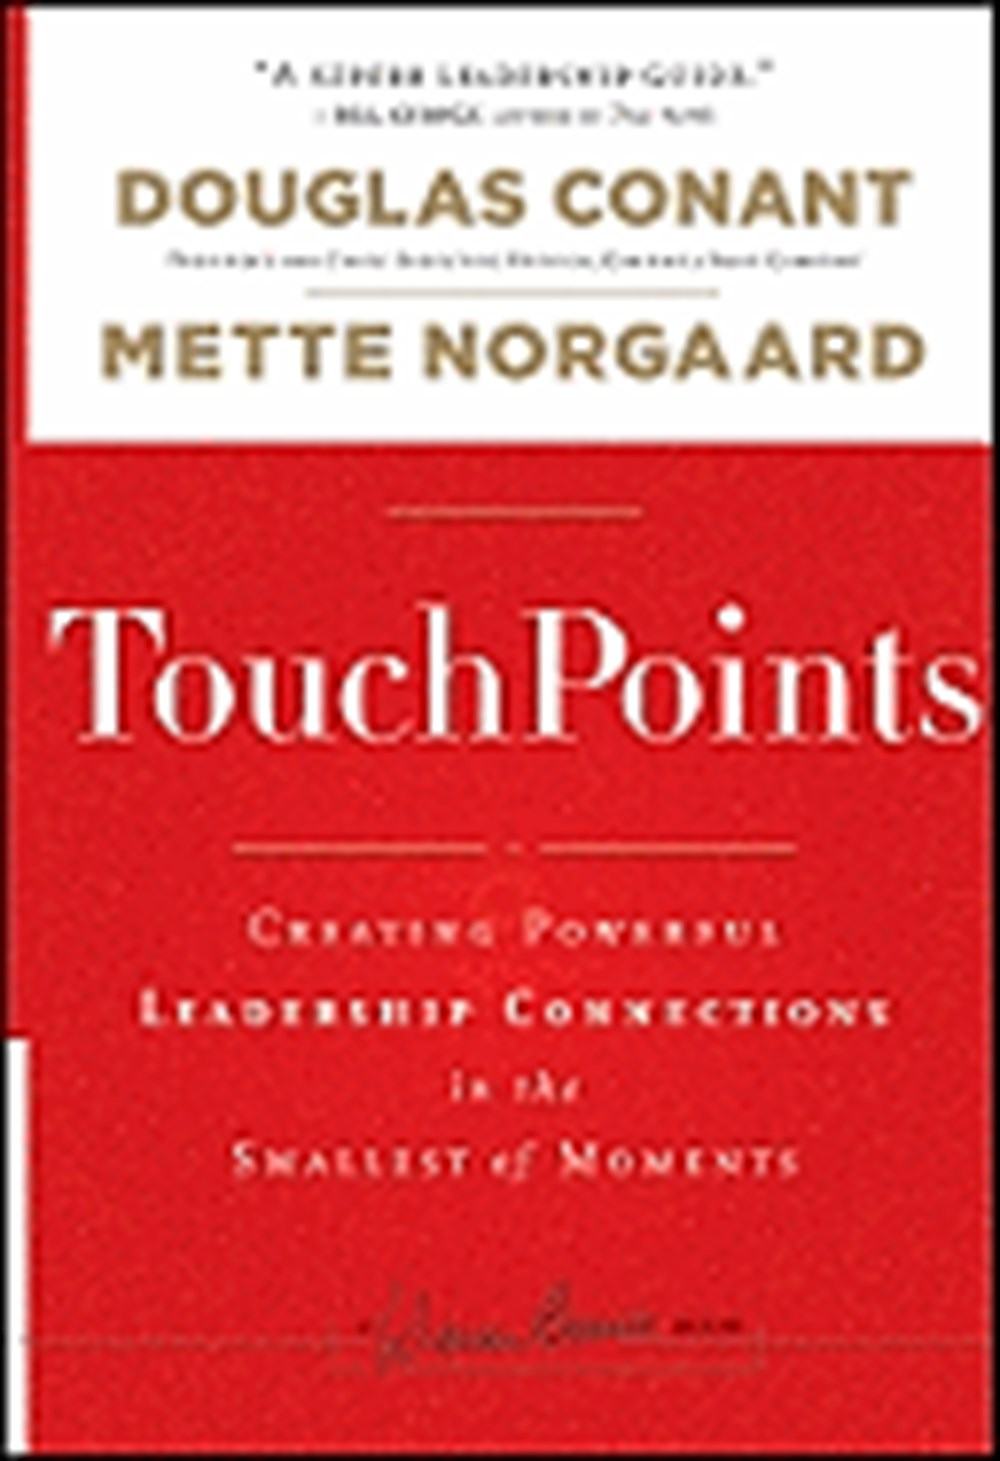 TouchPoints Creating Powerful Leadership Connections in the Smallest of Moments